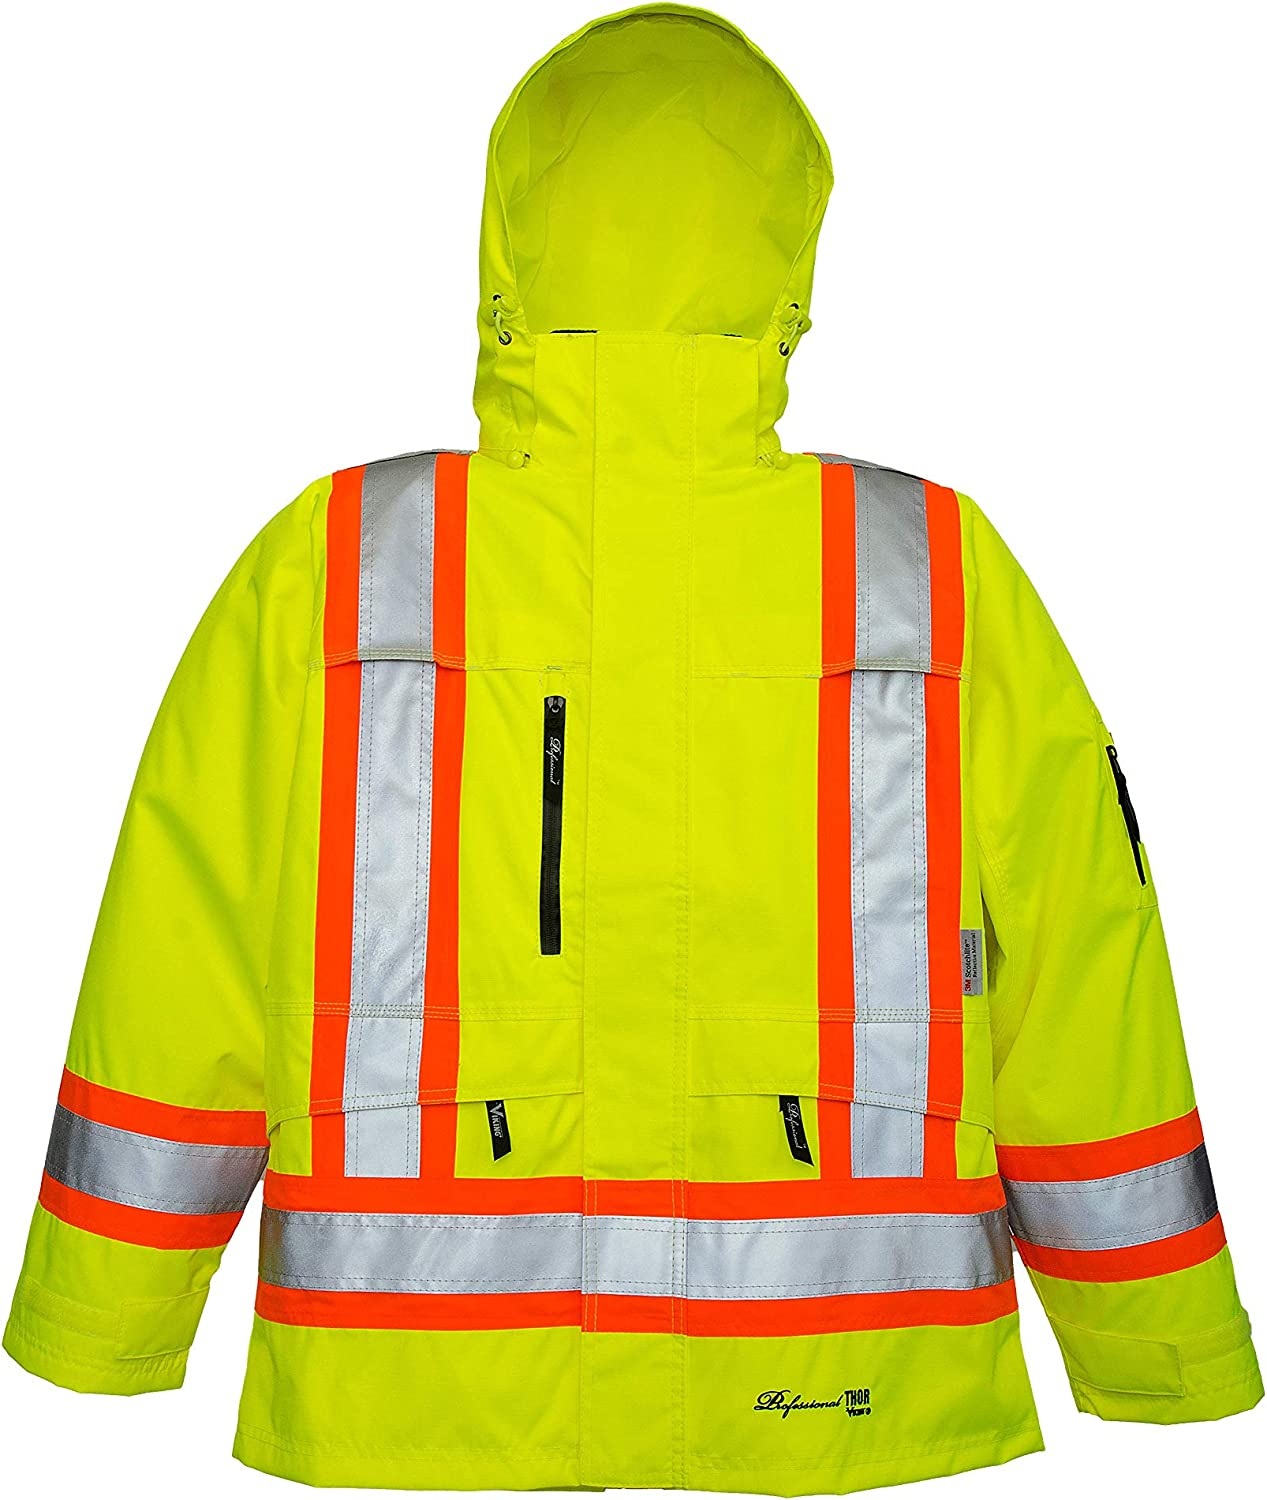 VIKING Professional Thor 300D Trilobal Waterproof and Windproof Hi-Vis Hooded Safety Jacket, Green, XX-Large